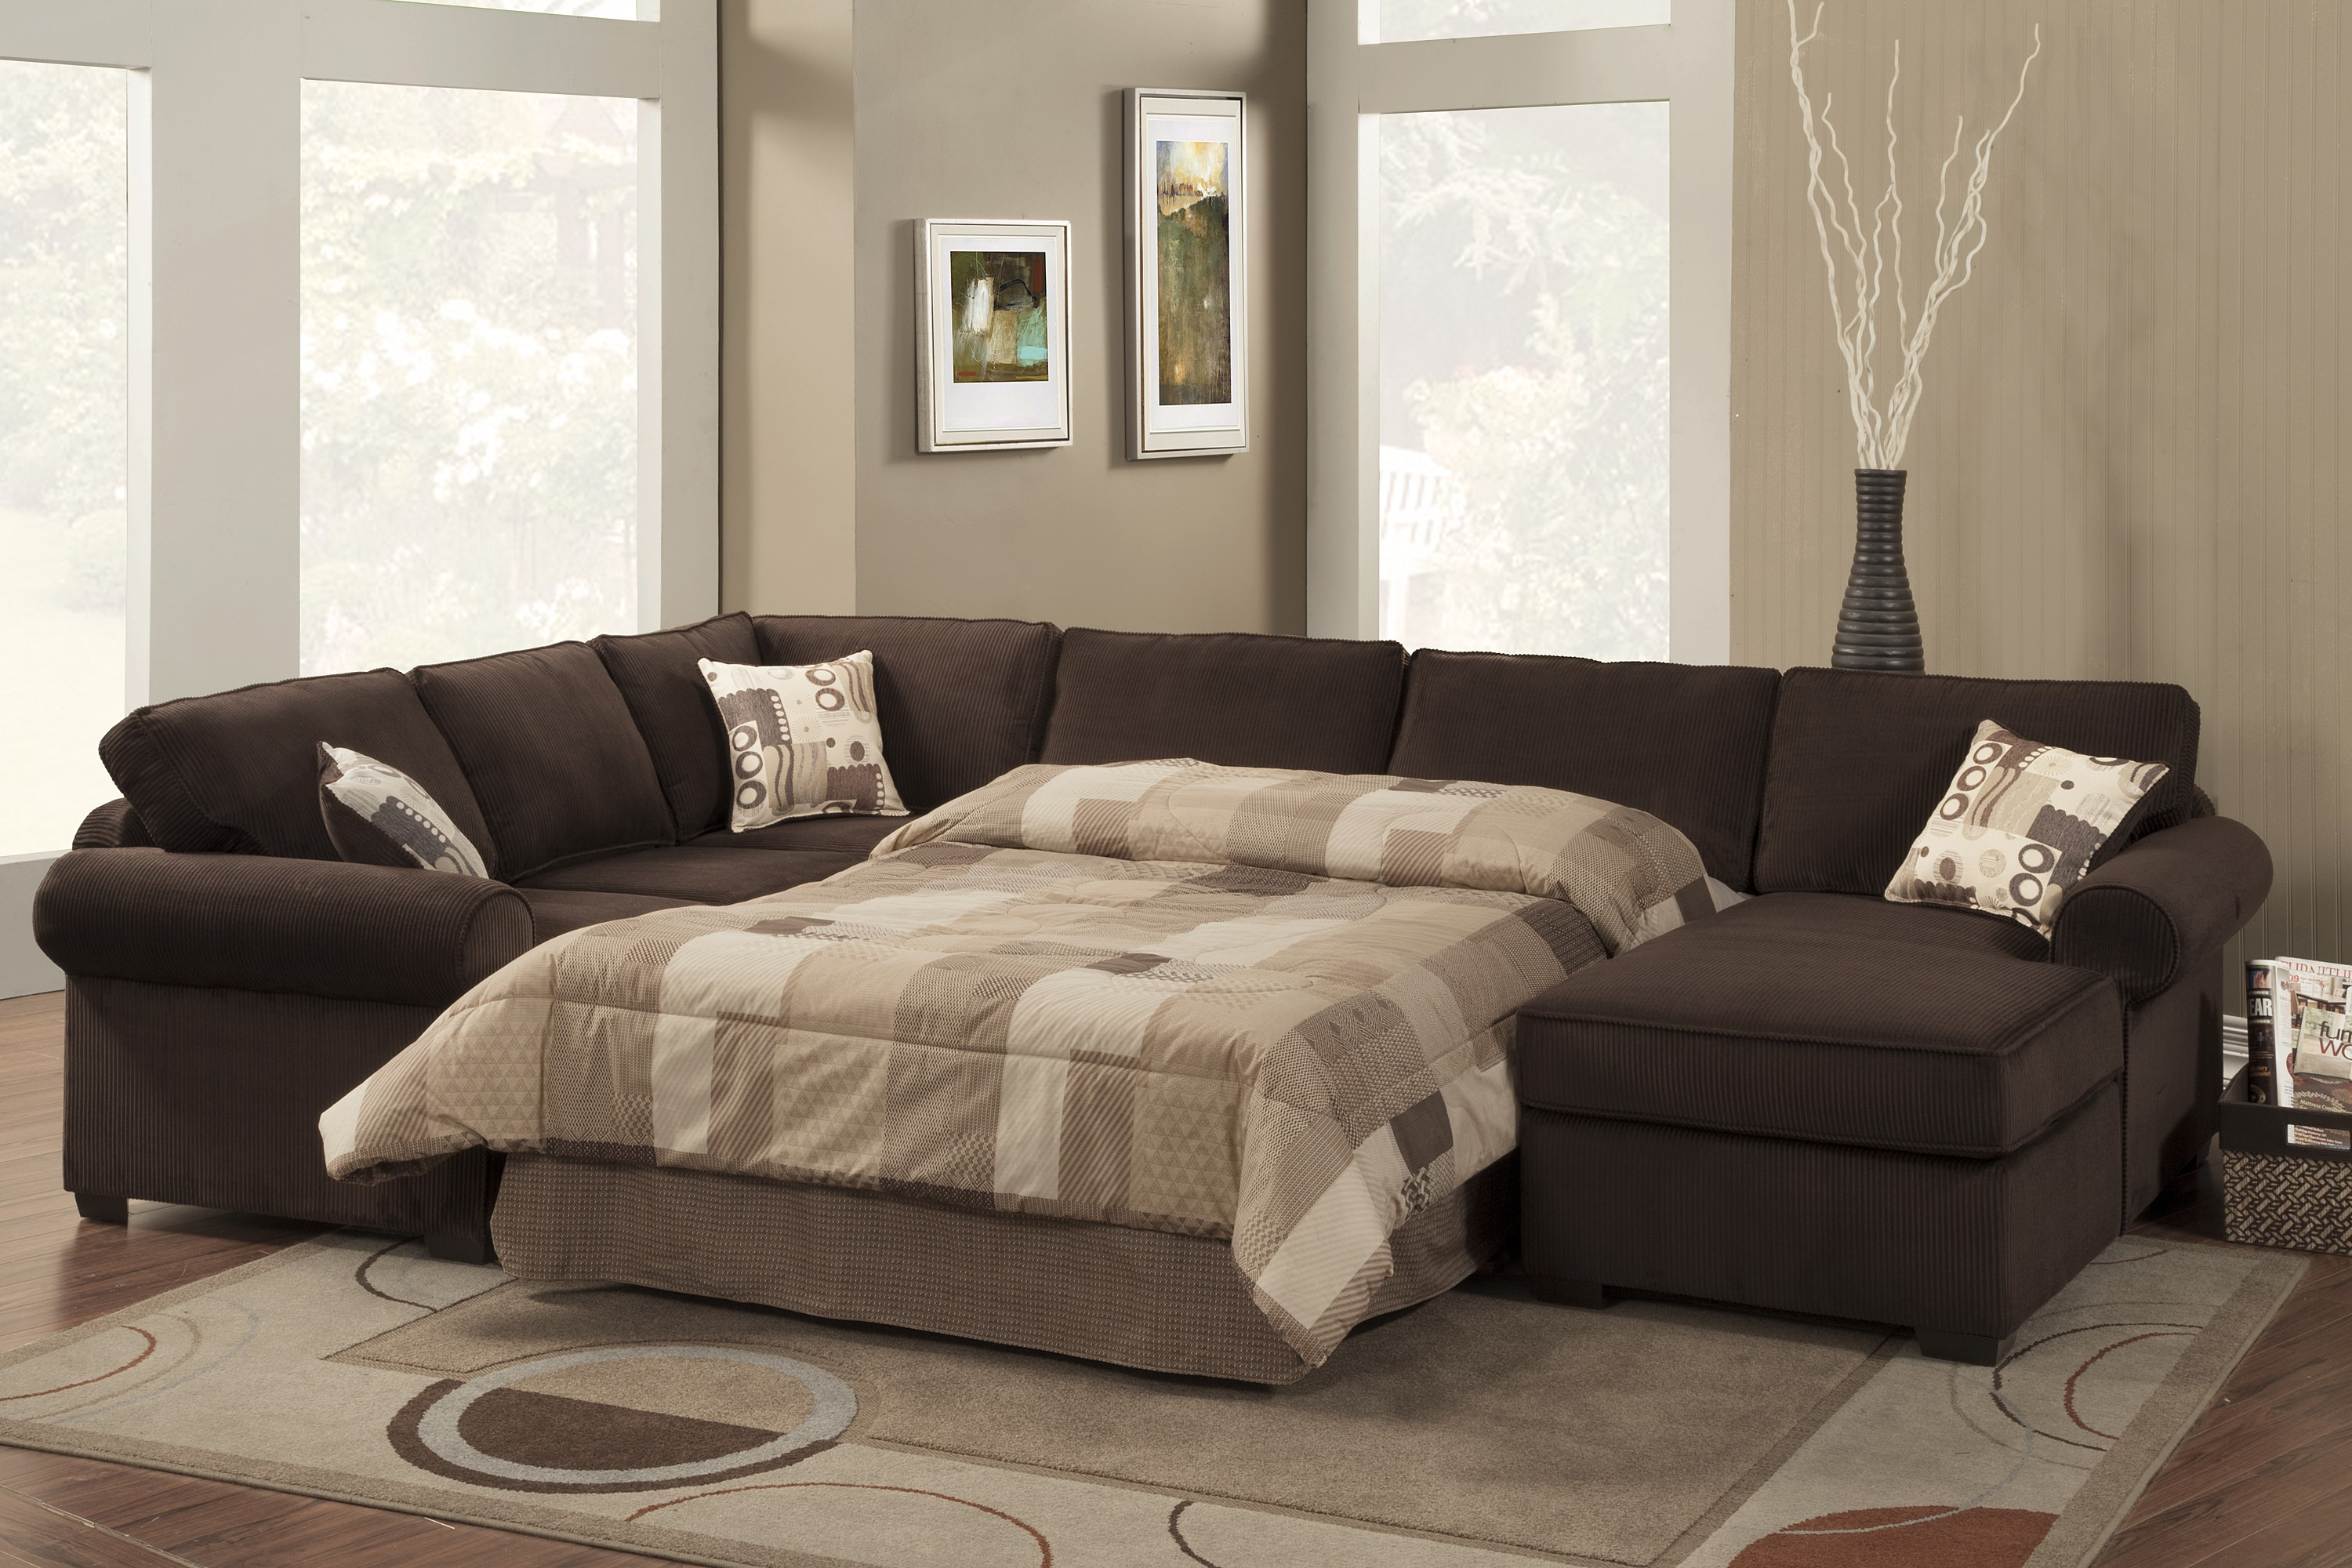 large bold brown sectional sofa sleepers with soft two tone bedsheets and cushions beautiful decorativedry plant : bed sectional couch - Sectionals, Sofas & Couches